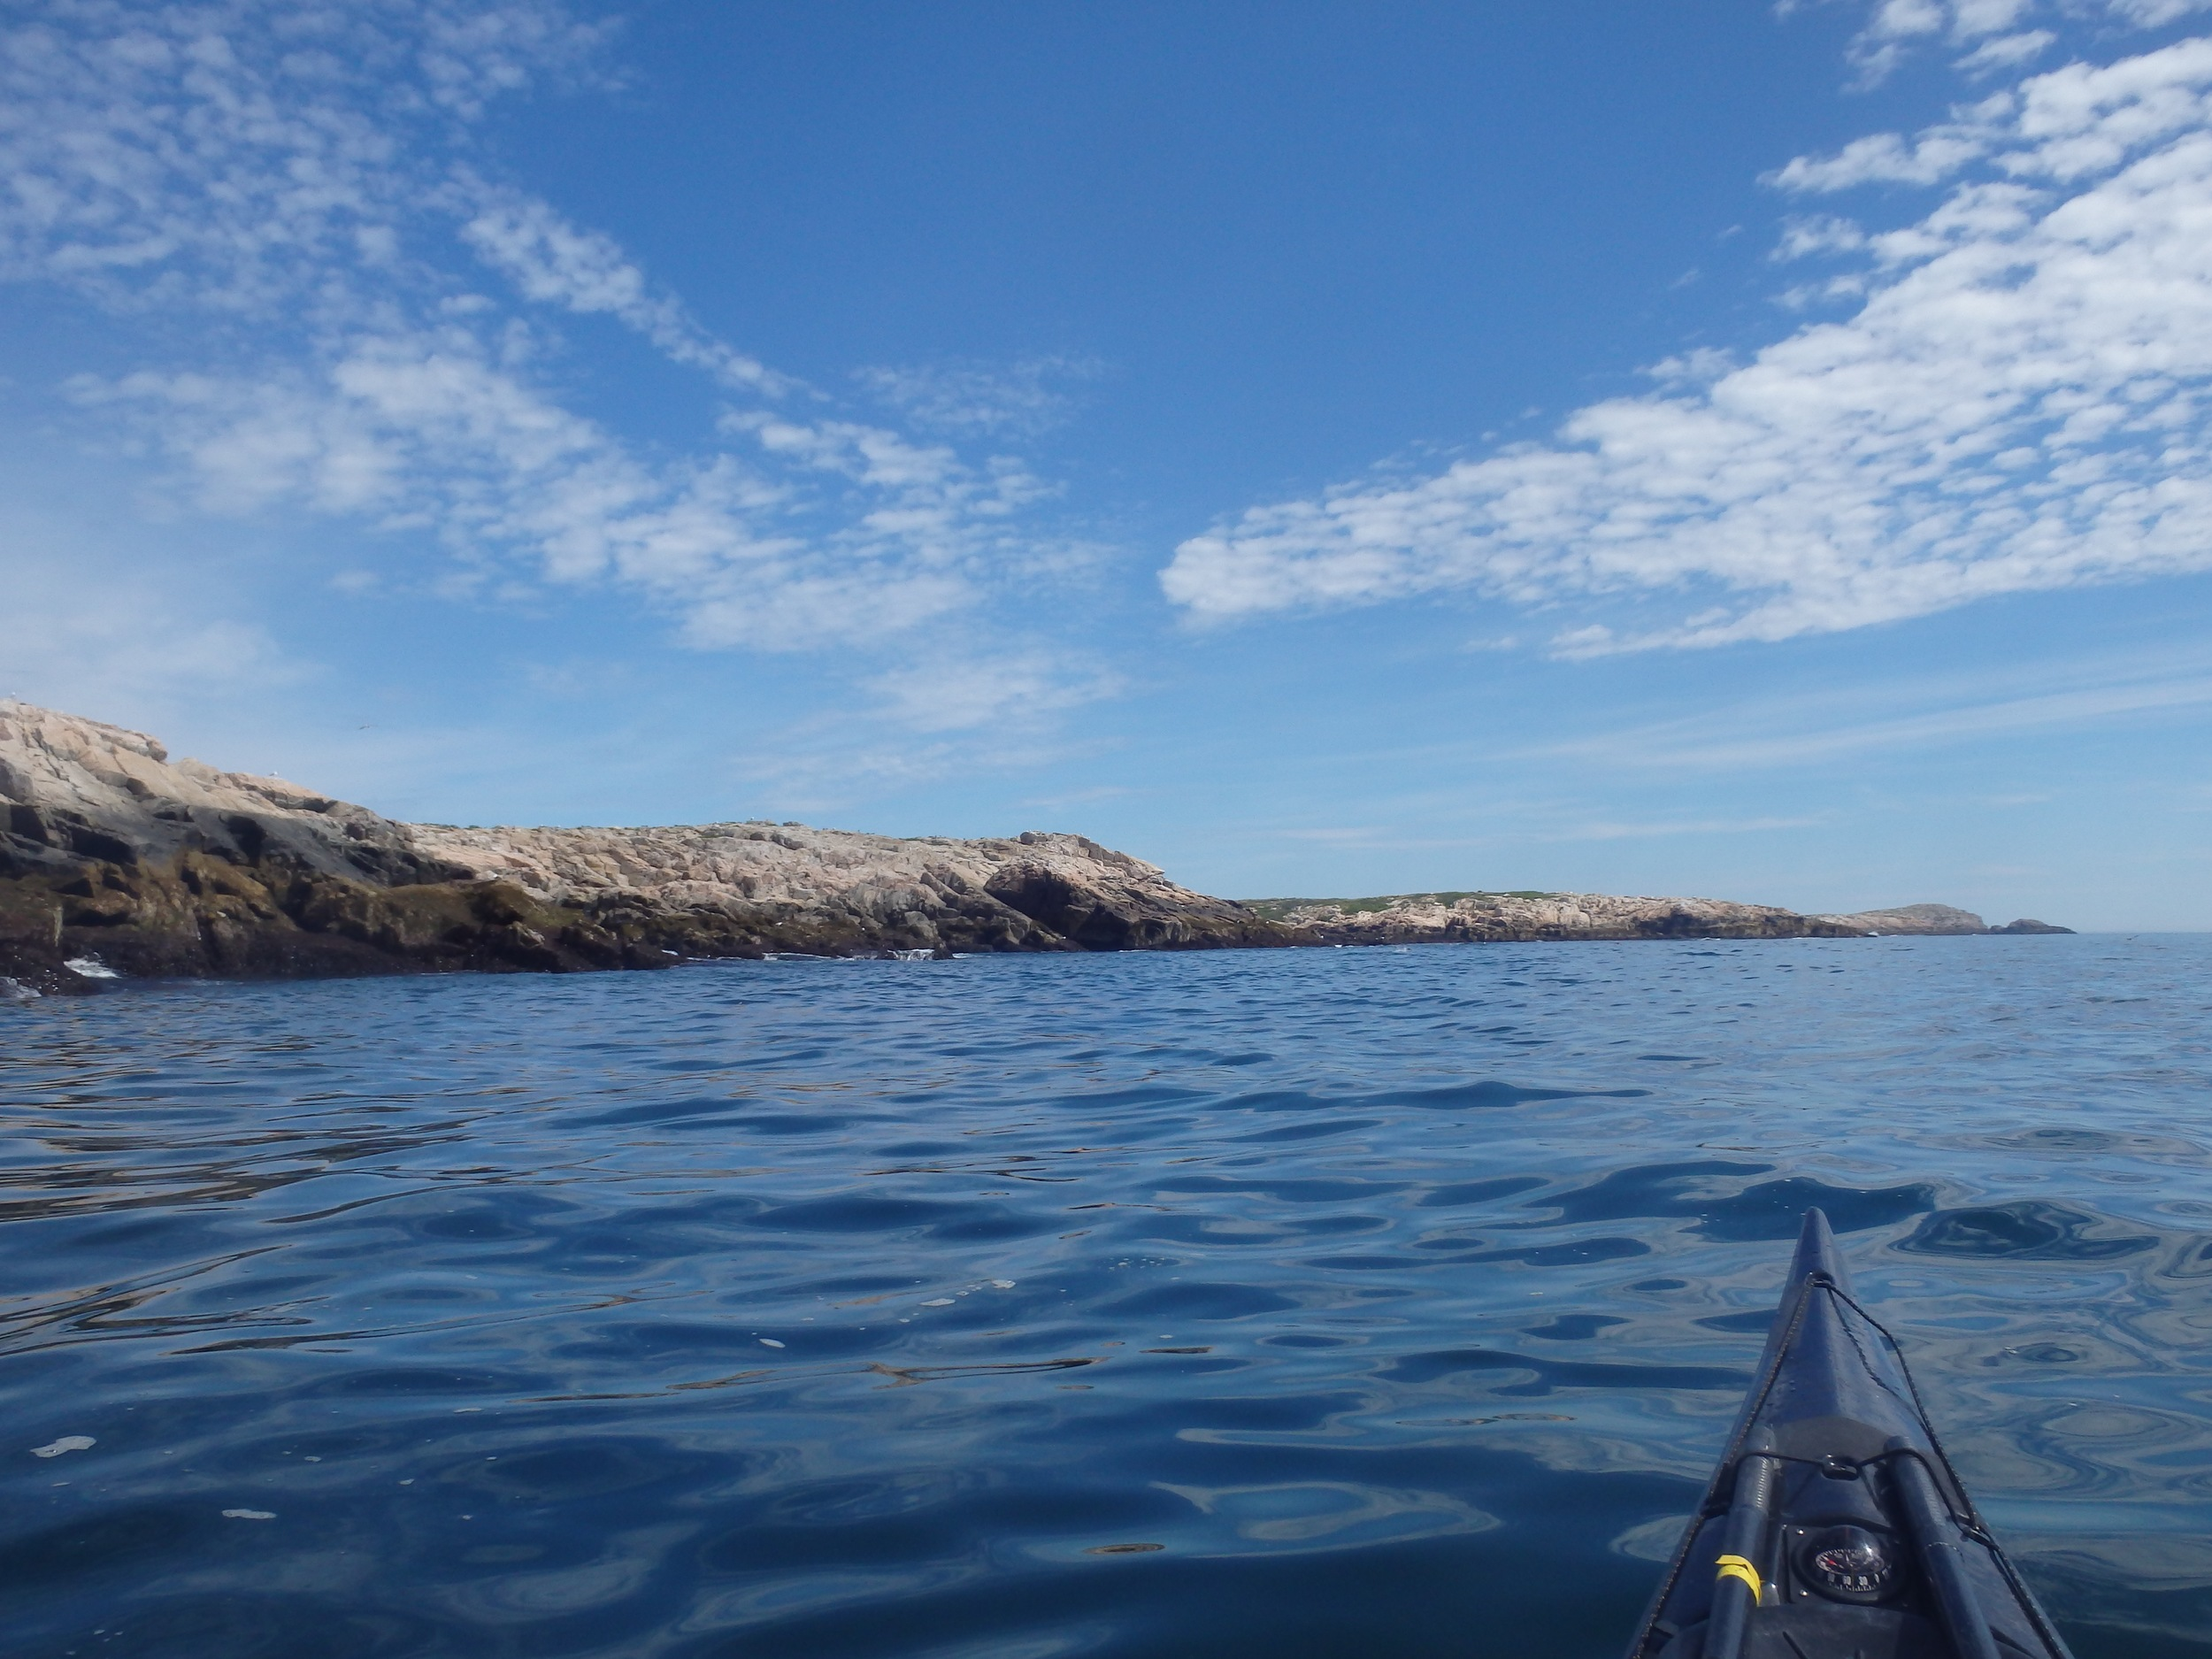 Approaching Wood Cove